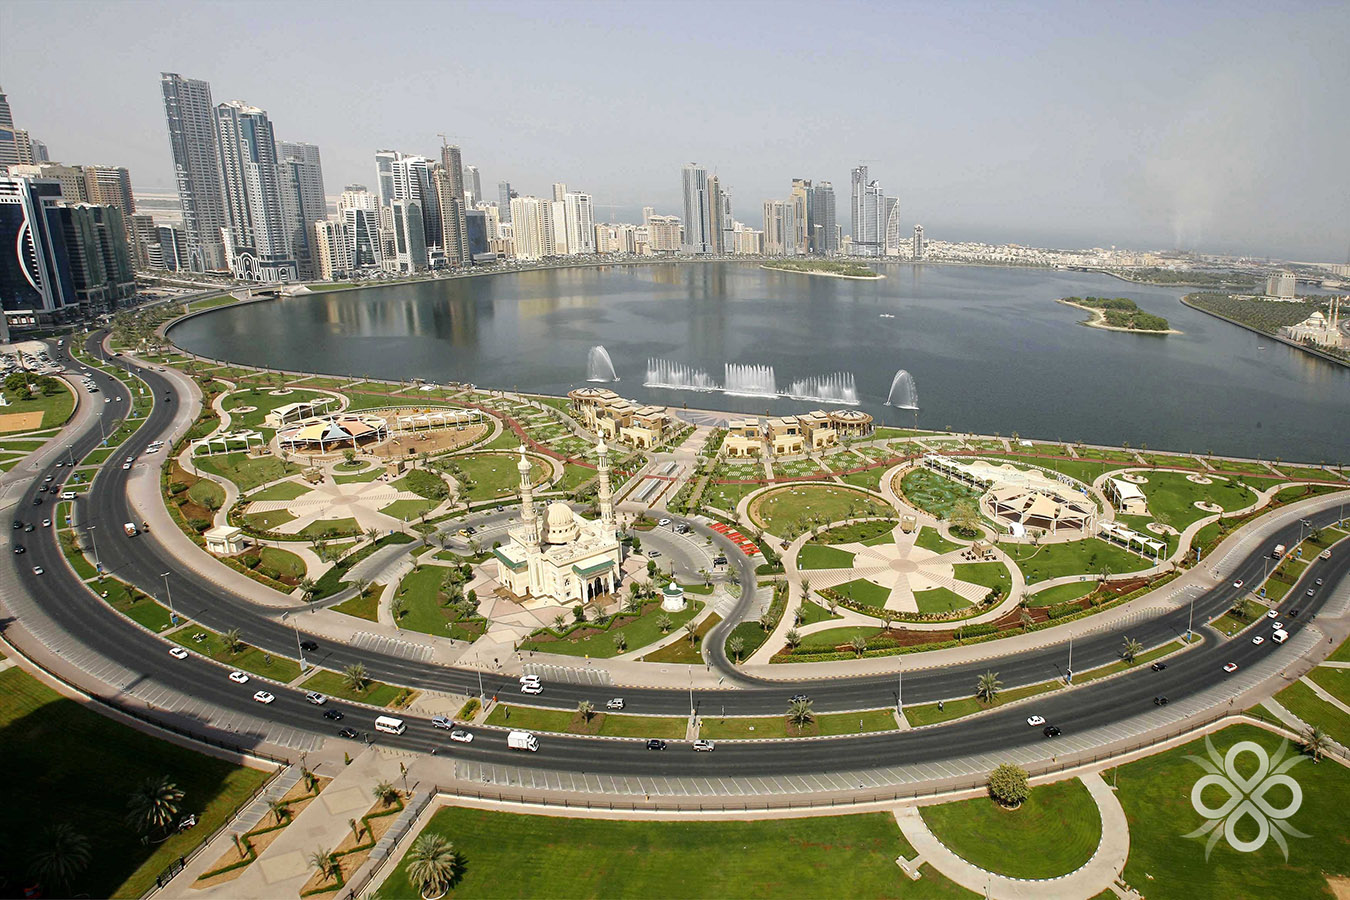 Al-Majaz Waterfront Development